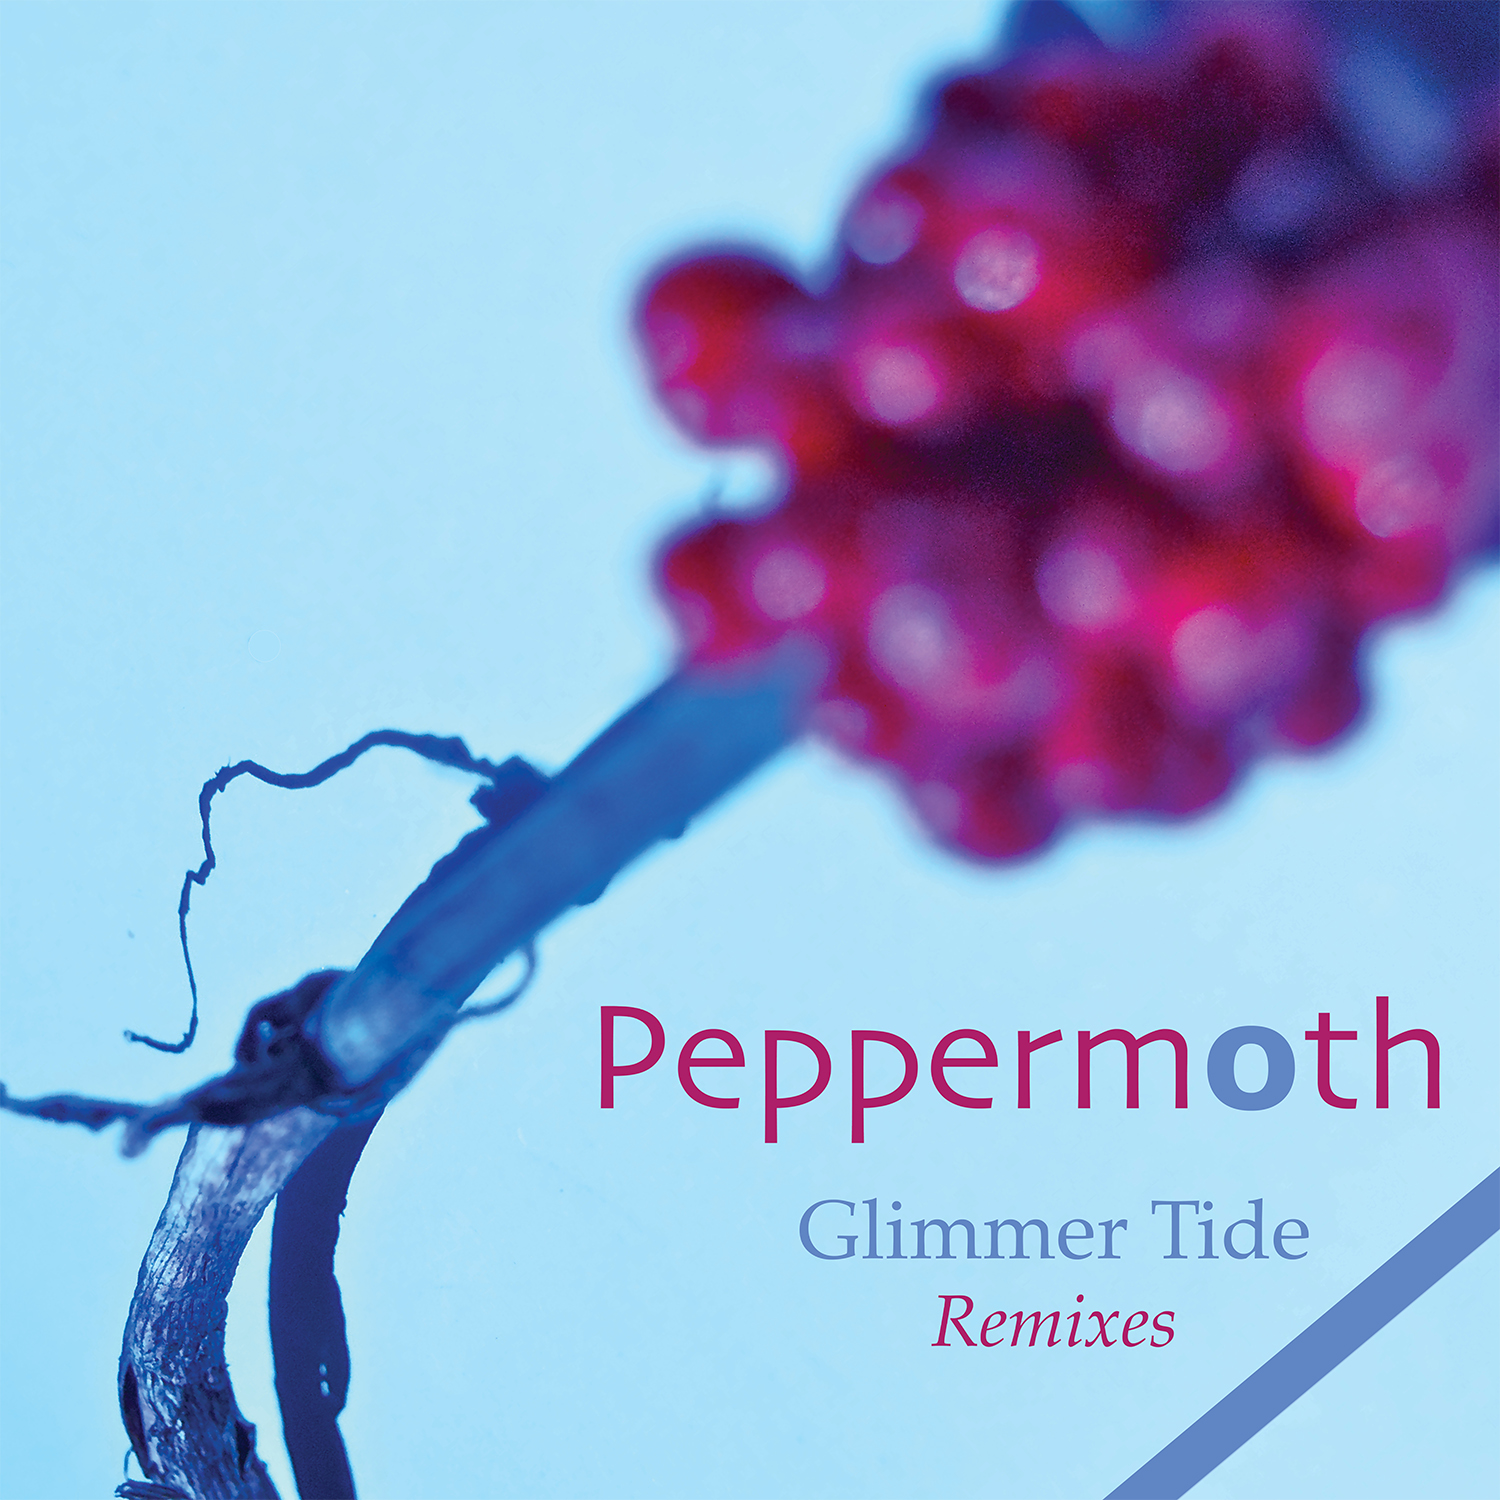 Peppermoth Glimmer Tide Remixes